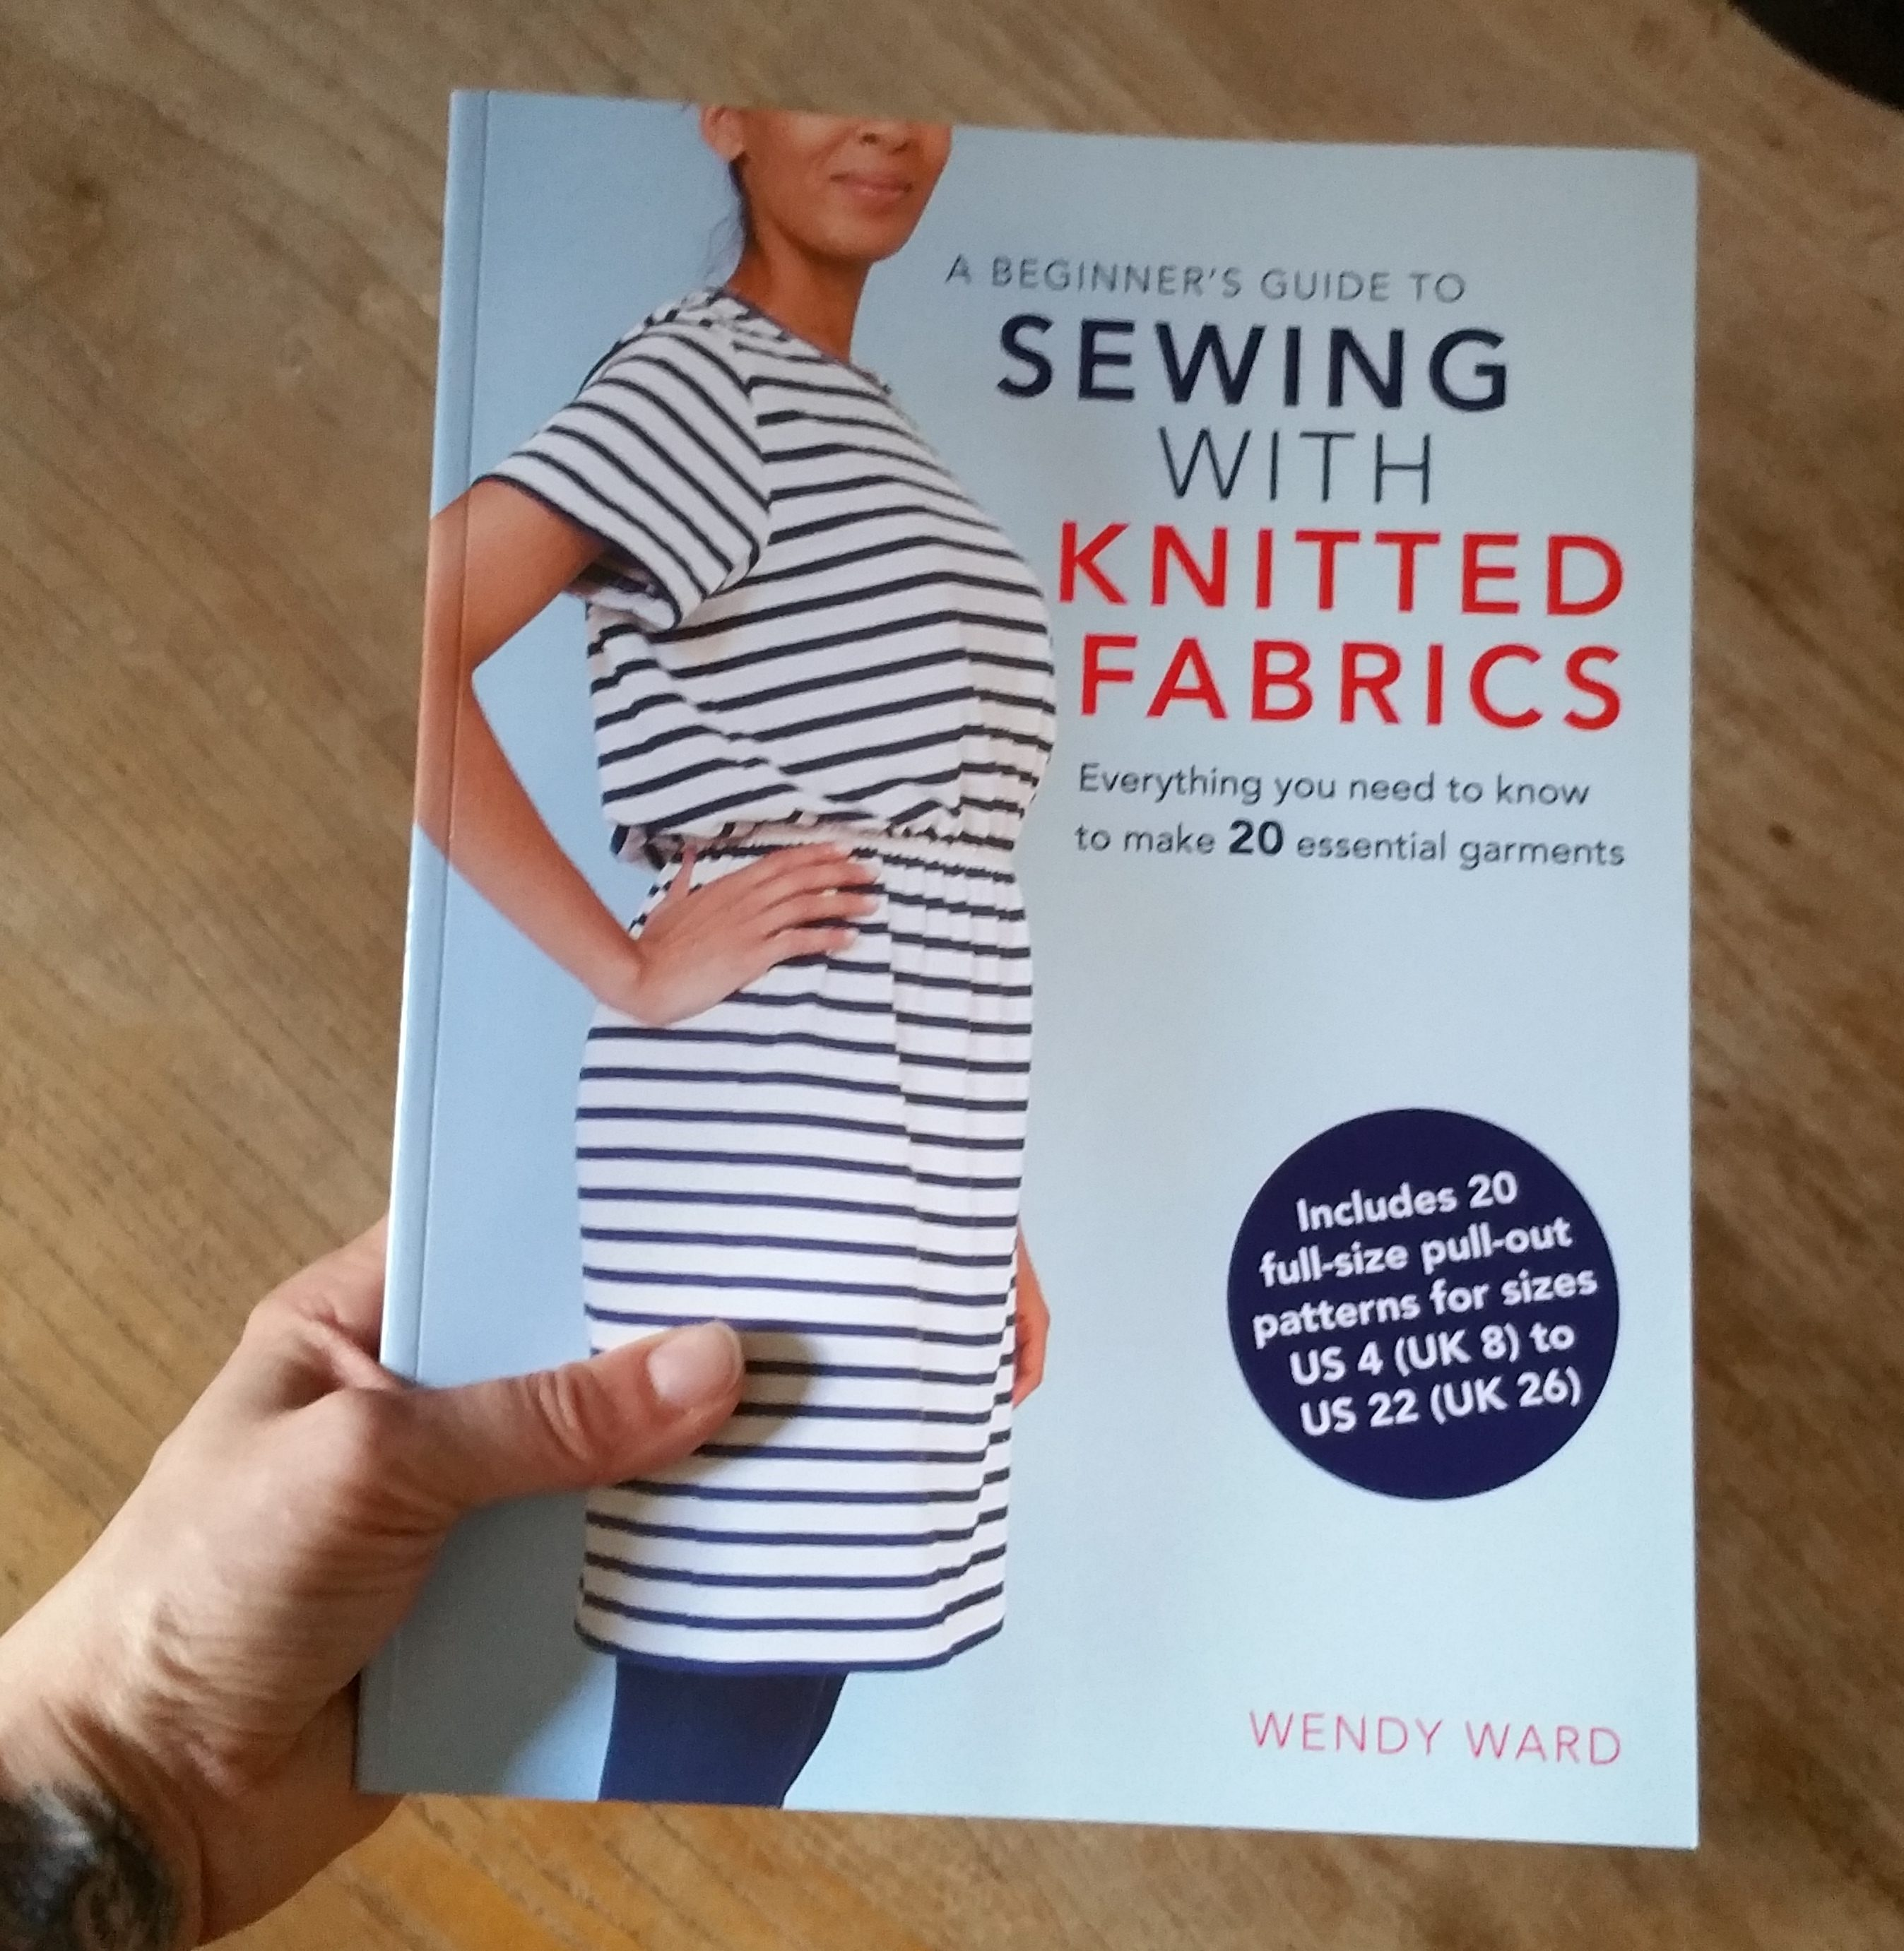 How To Make A Knitted Book Cover ~ First copy of beginner s guide to sewing with knitted fabrics